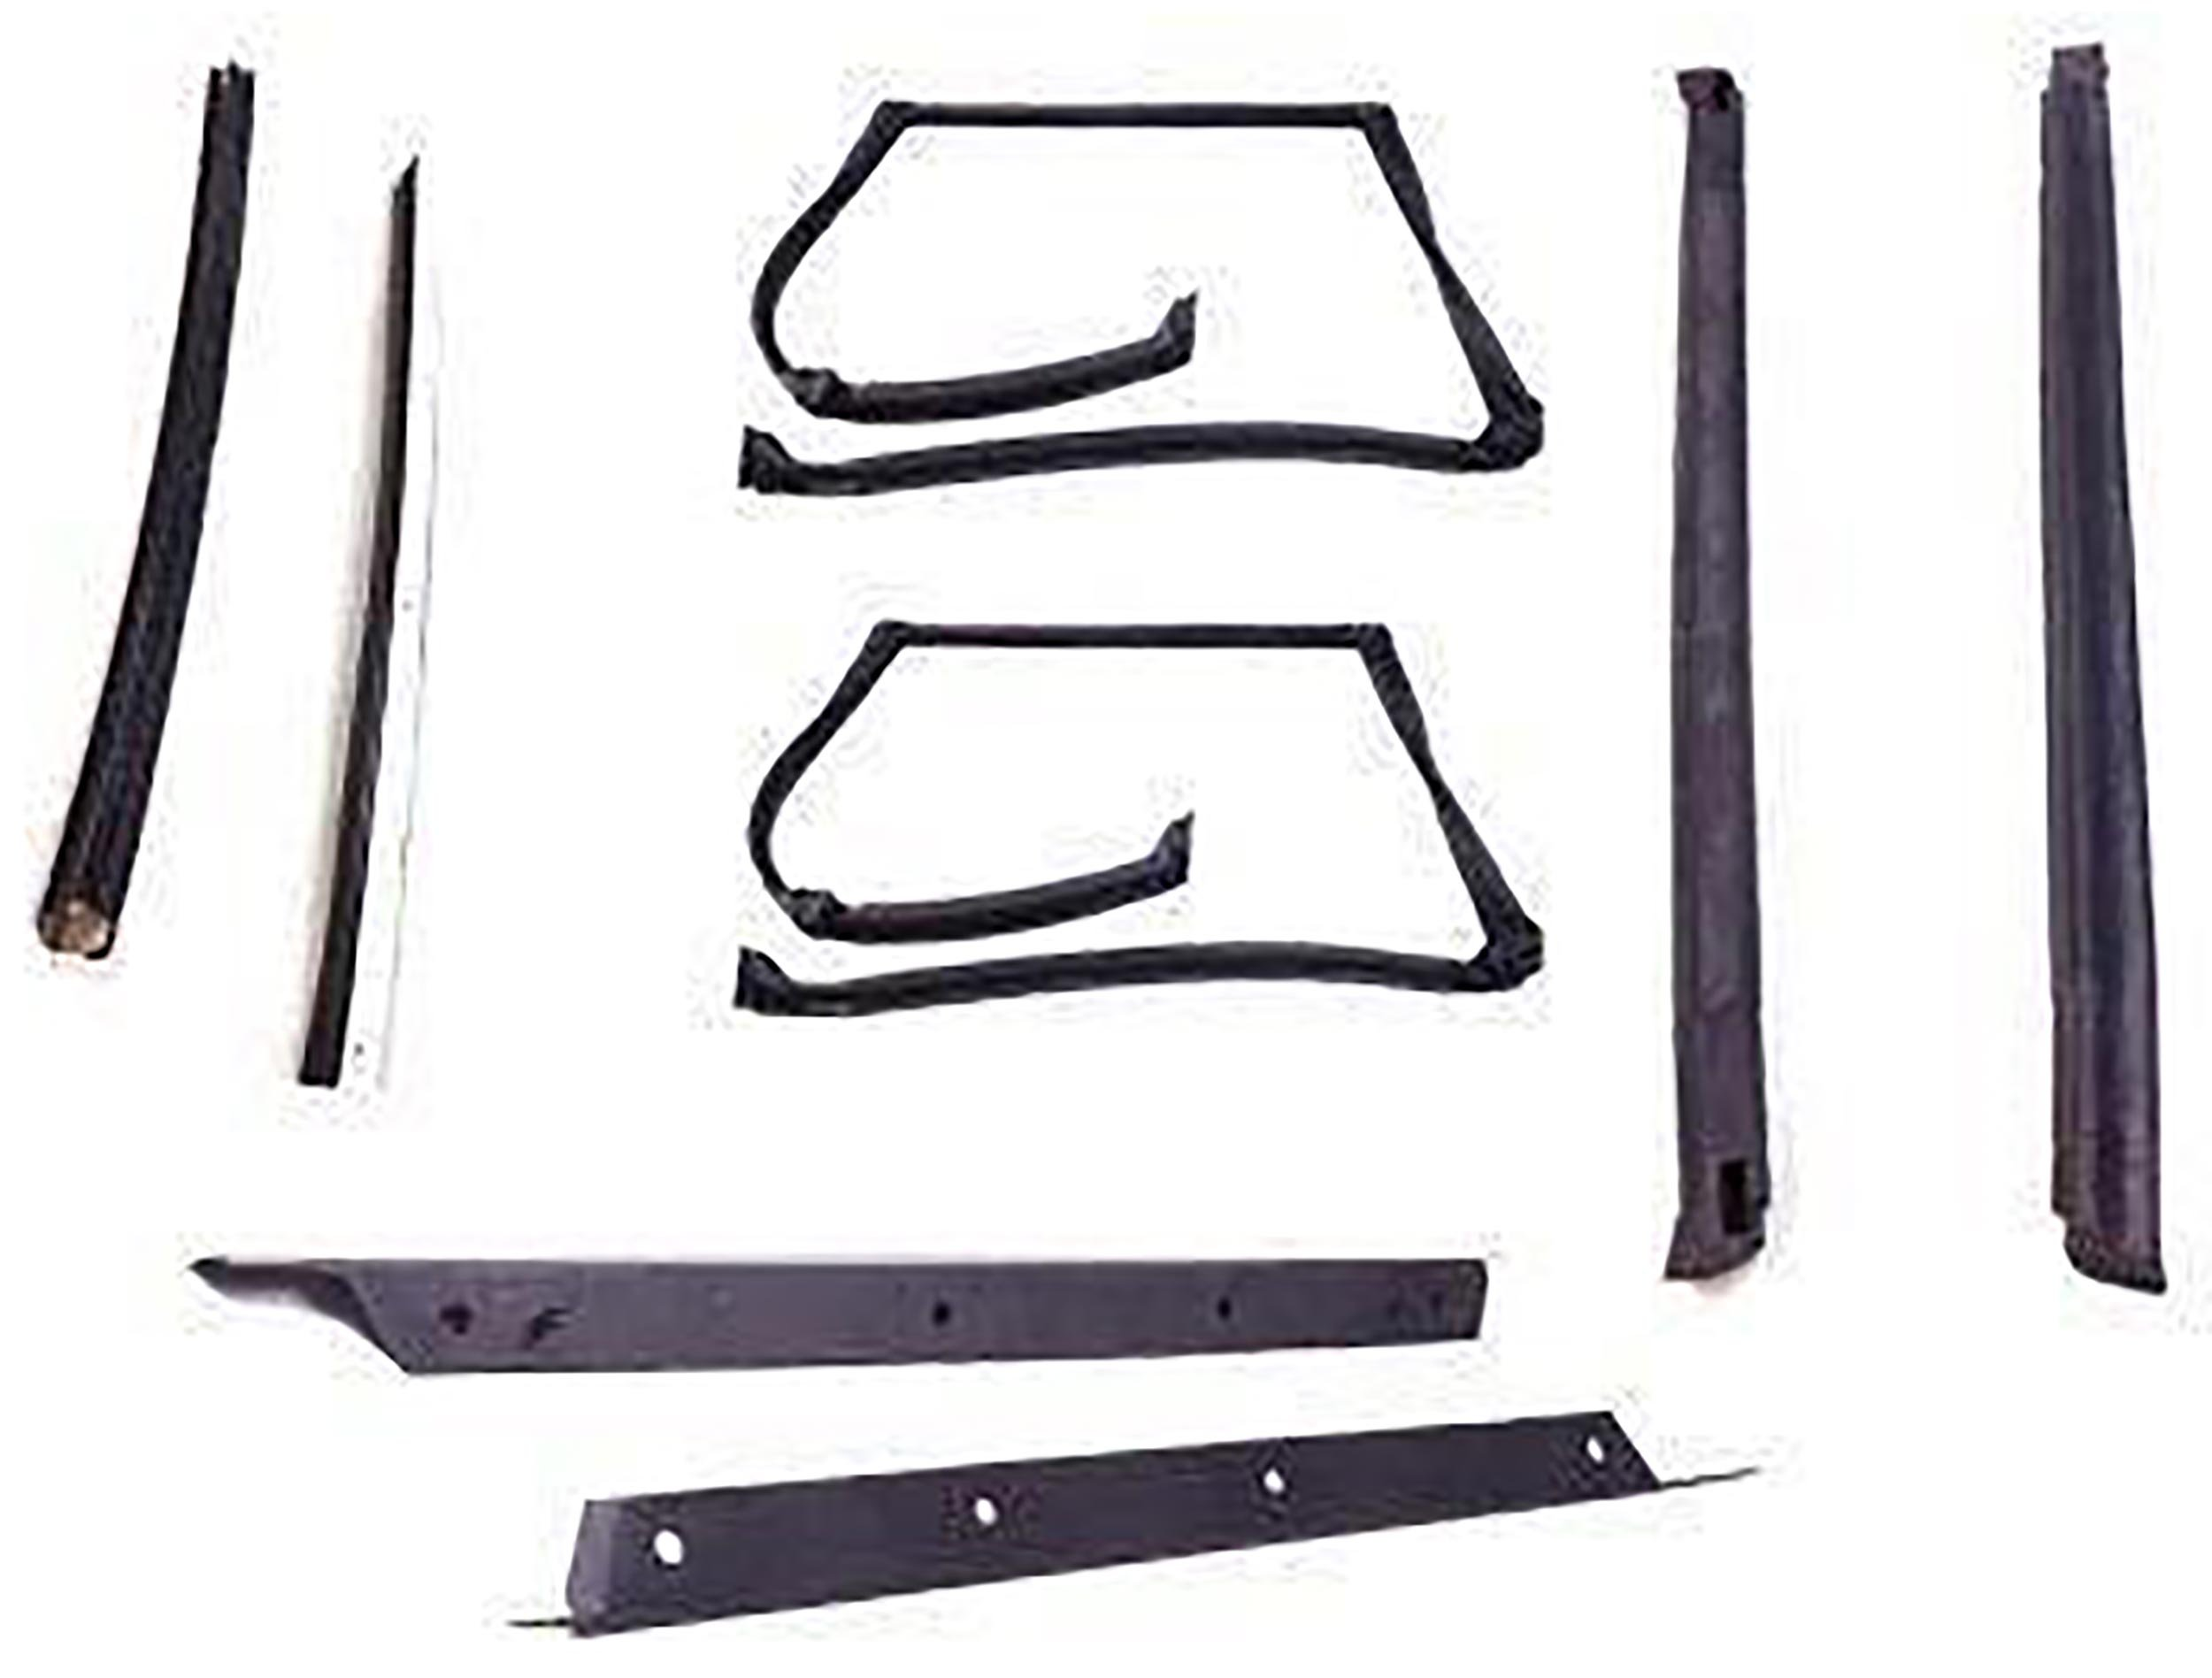 APDTY 140003 T-Top Rubber Seal Weatherstrip 8-Piece Kit Fits 1982-1992 Camaro or Firebird (Includes Rubber Trim Drip Edges; See APDTY-140002 For Plastic Drip Trim Edges) by APDTY